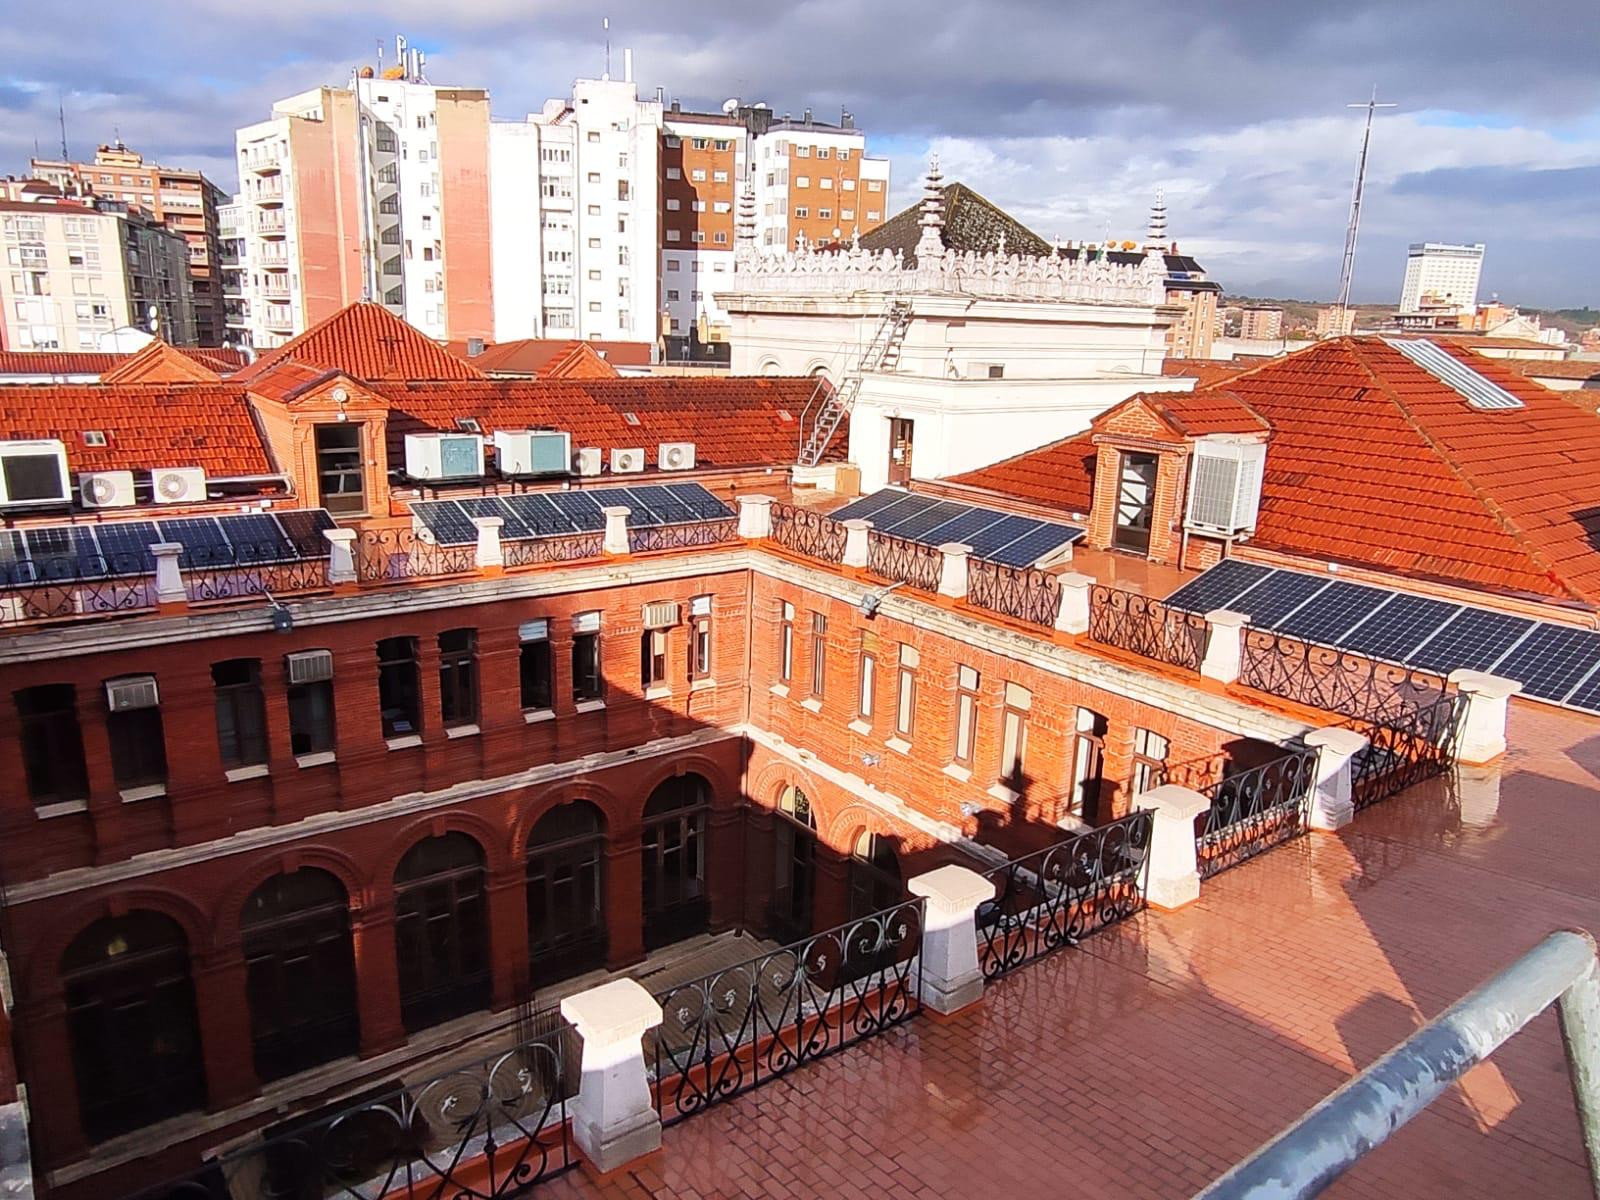 The City Council of Valladolid committed to solar energy